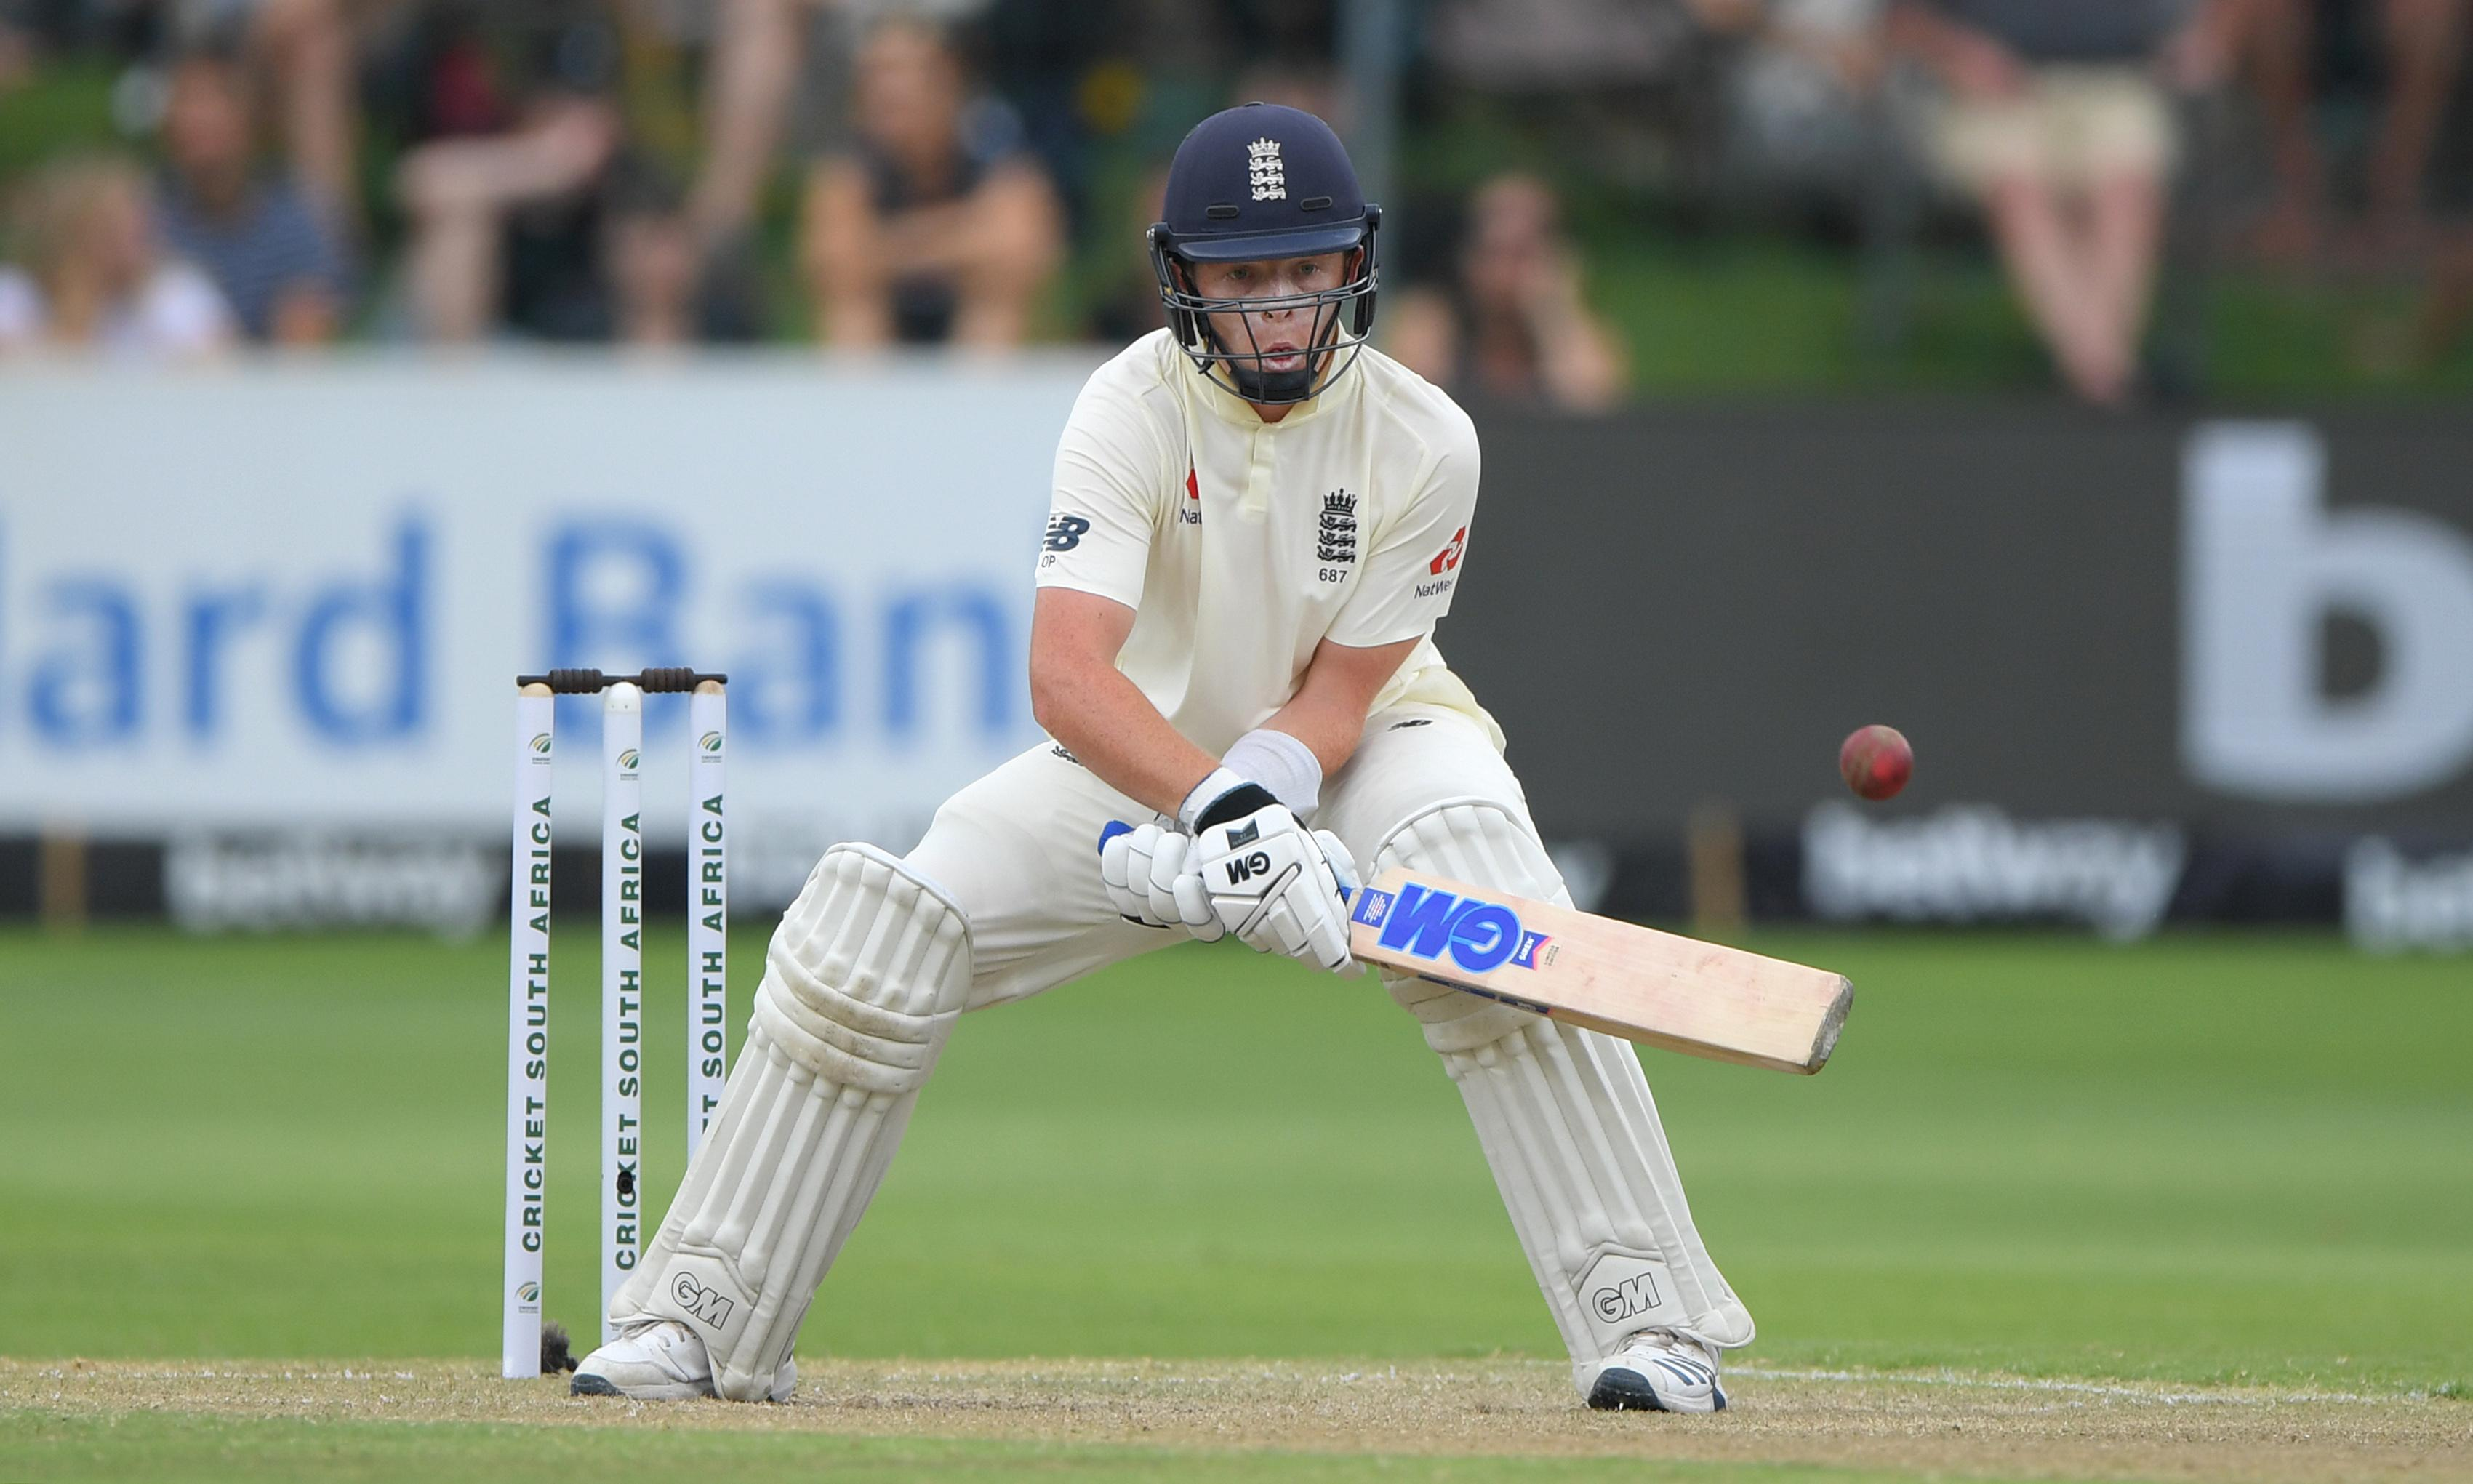 Ollie Pope's assured innings hints at bright future in England middle order